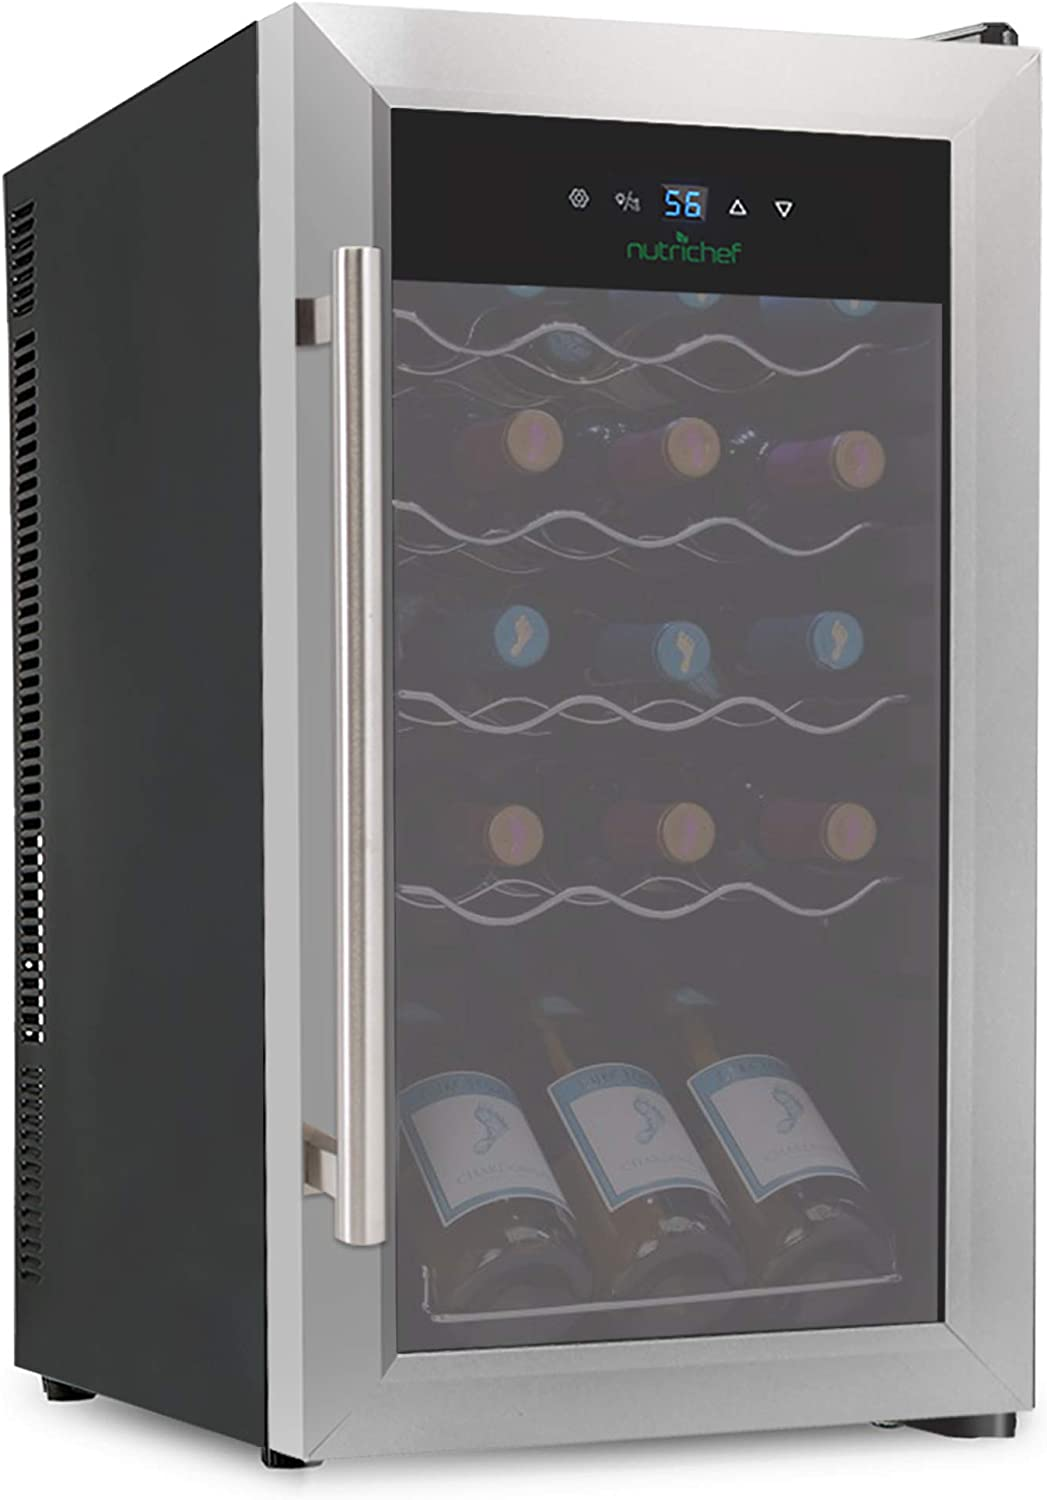 7. Nutrichef 15 Bottle Wine Cooler